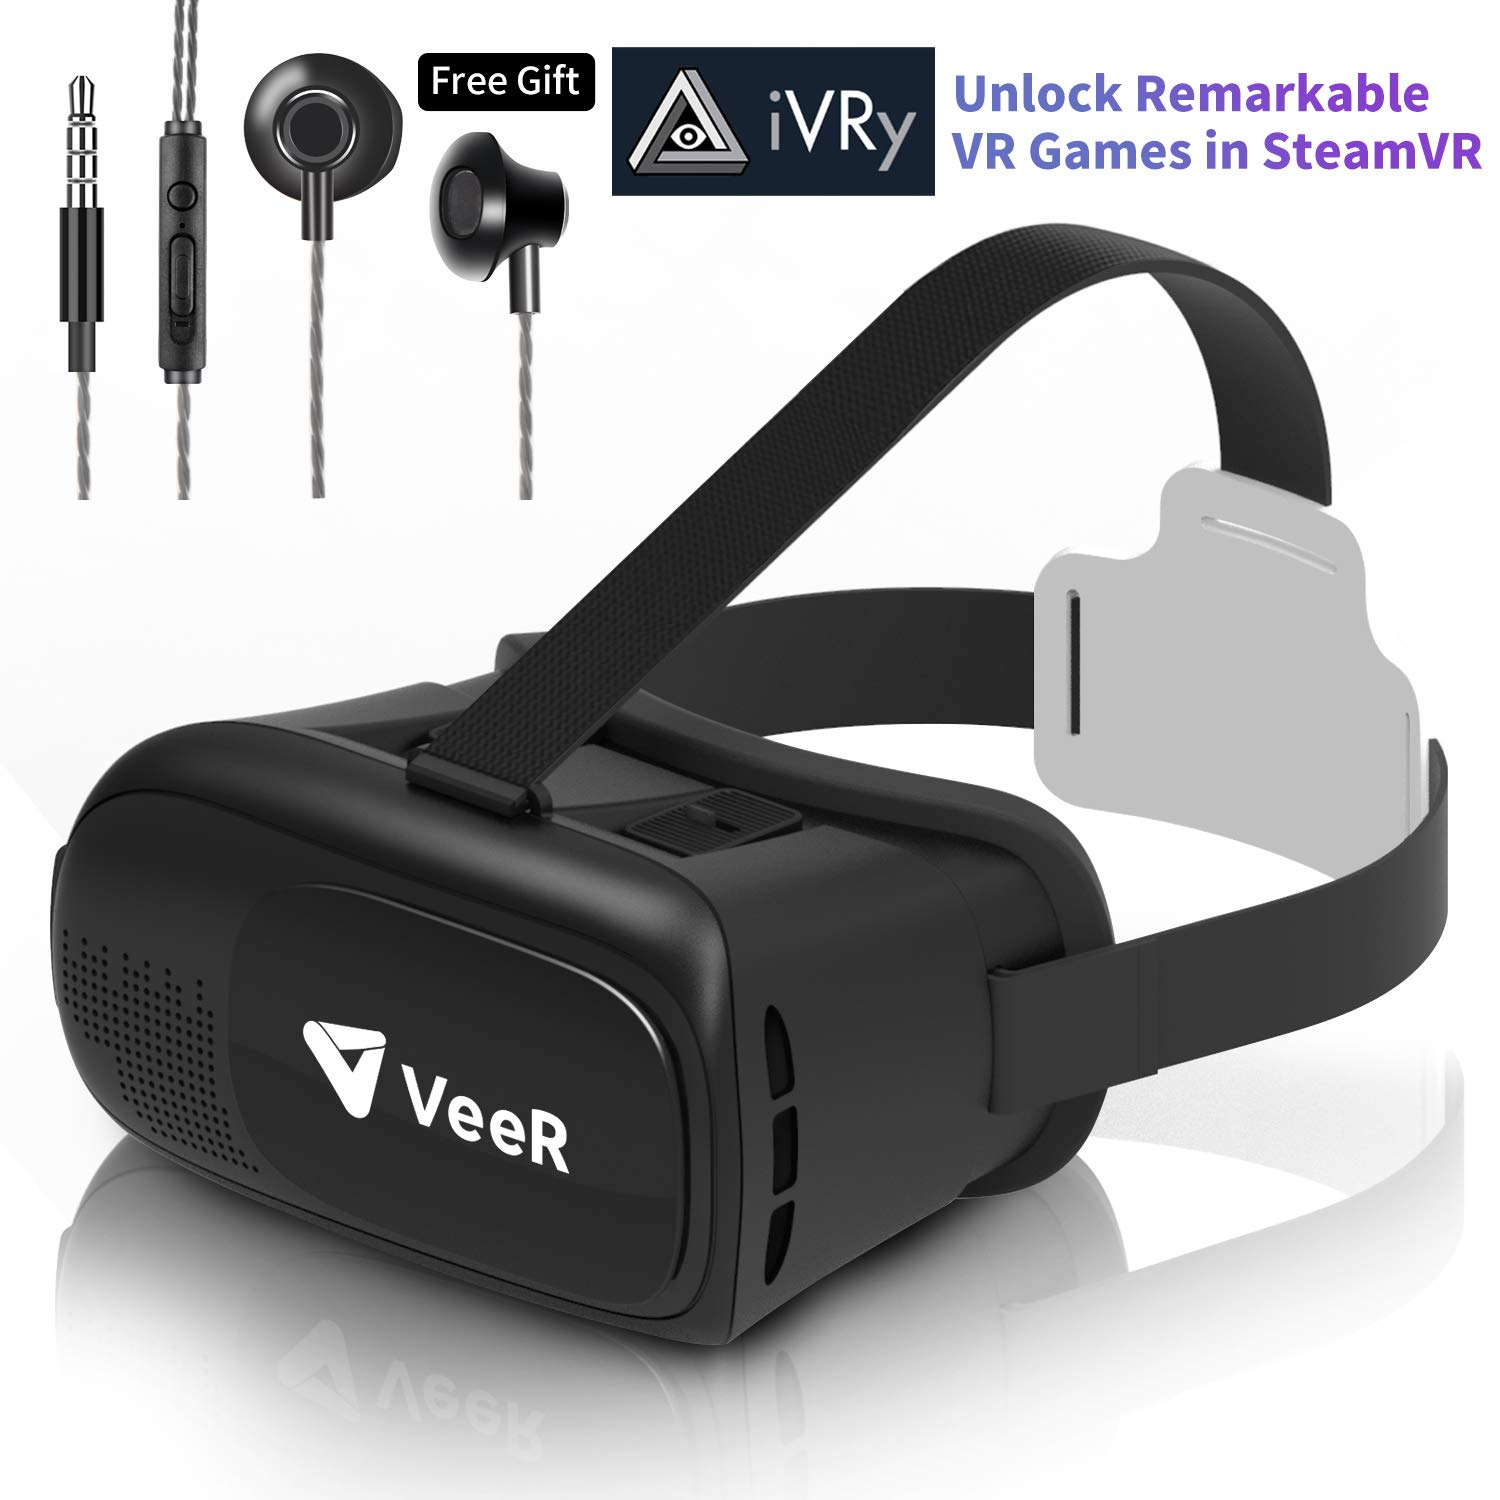 VeeR Origin VR Headset, Universal Virtual Reality Goggles Ver2.0 for 360 Movies&Video with Powerful Ivry Games,Compatible with Android Smartphone & iPhone, 3D VR Glasses with in-Ear Earbud Headphone by Veer